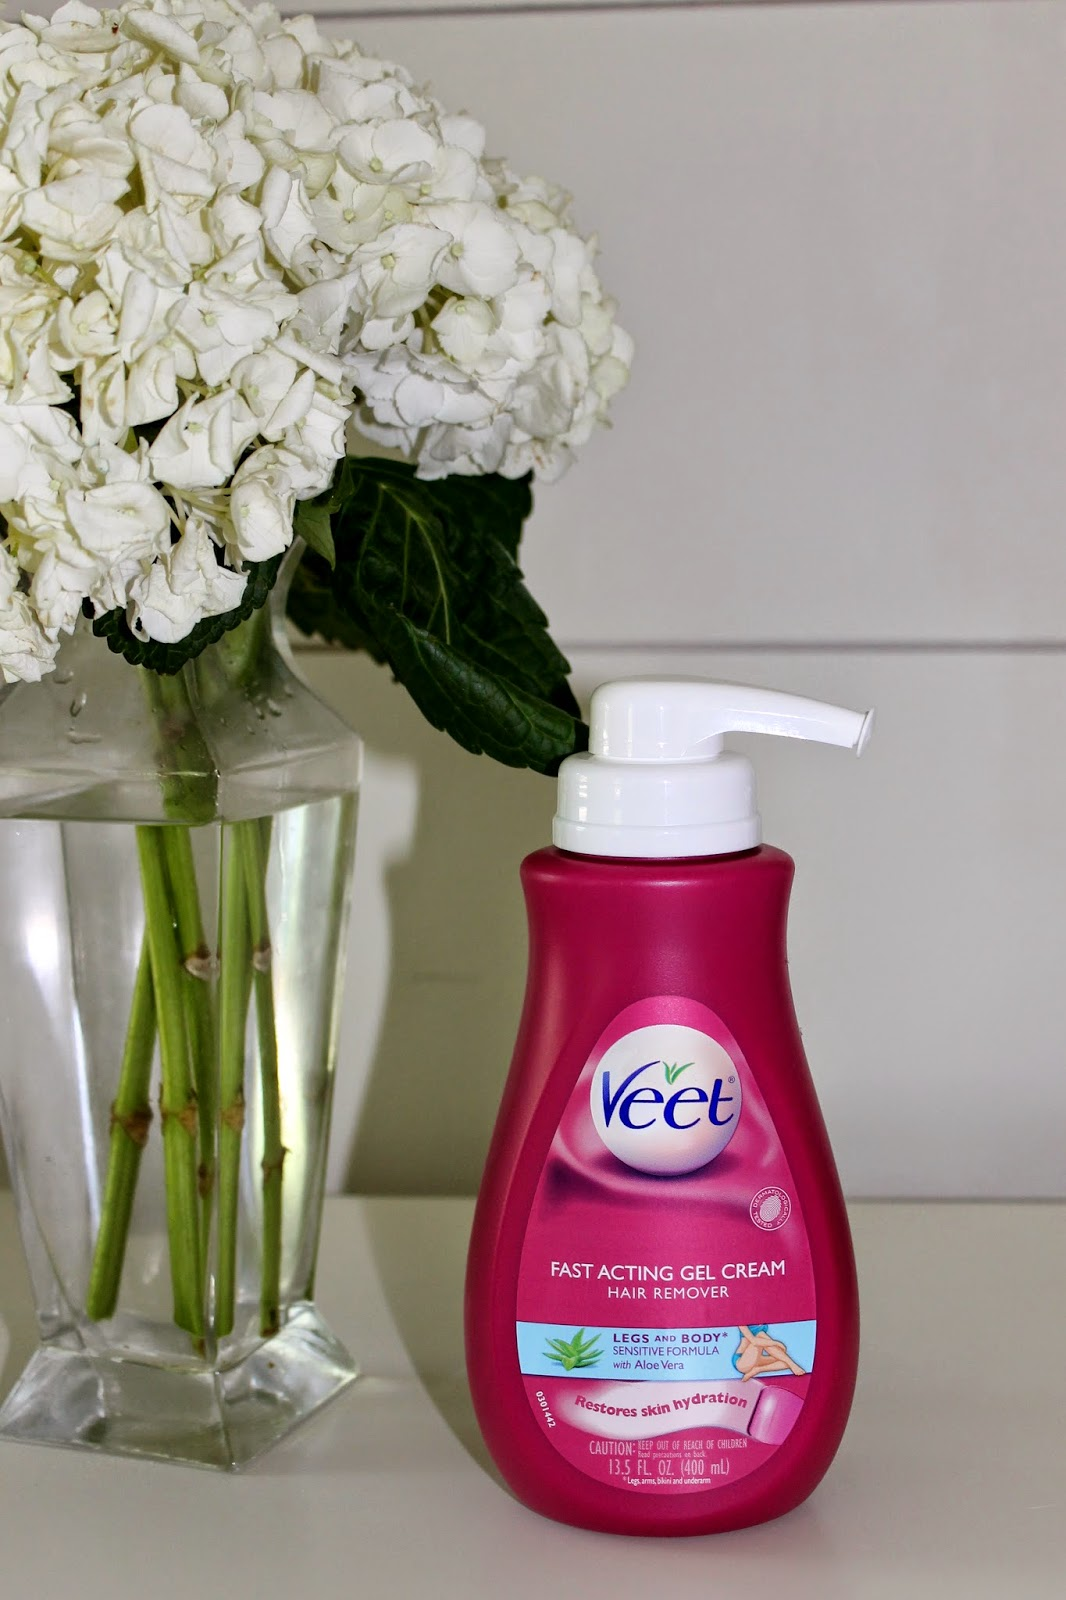 Veet Fast Acting Gel Cream Hair Removal Review